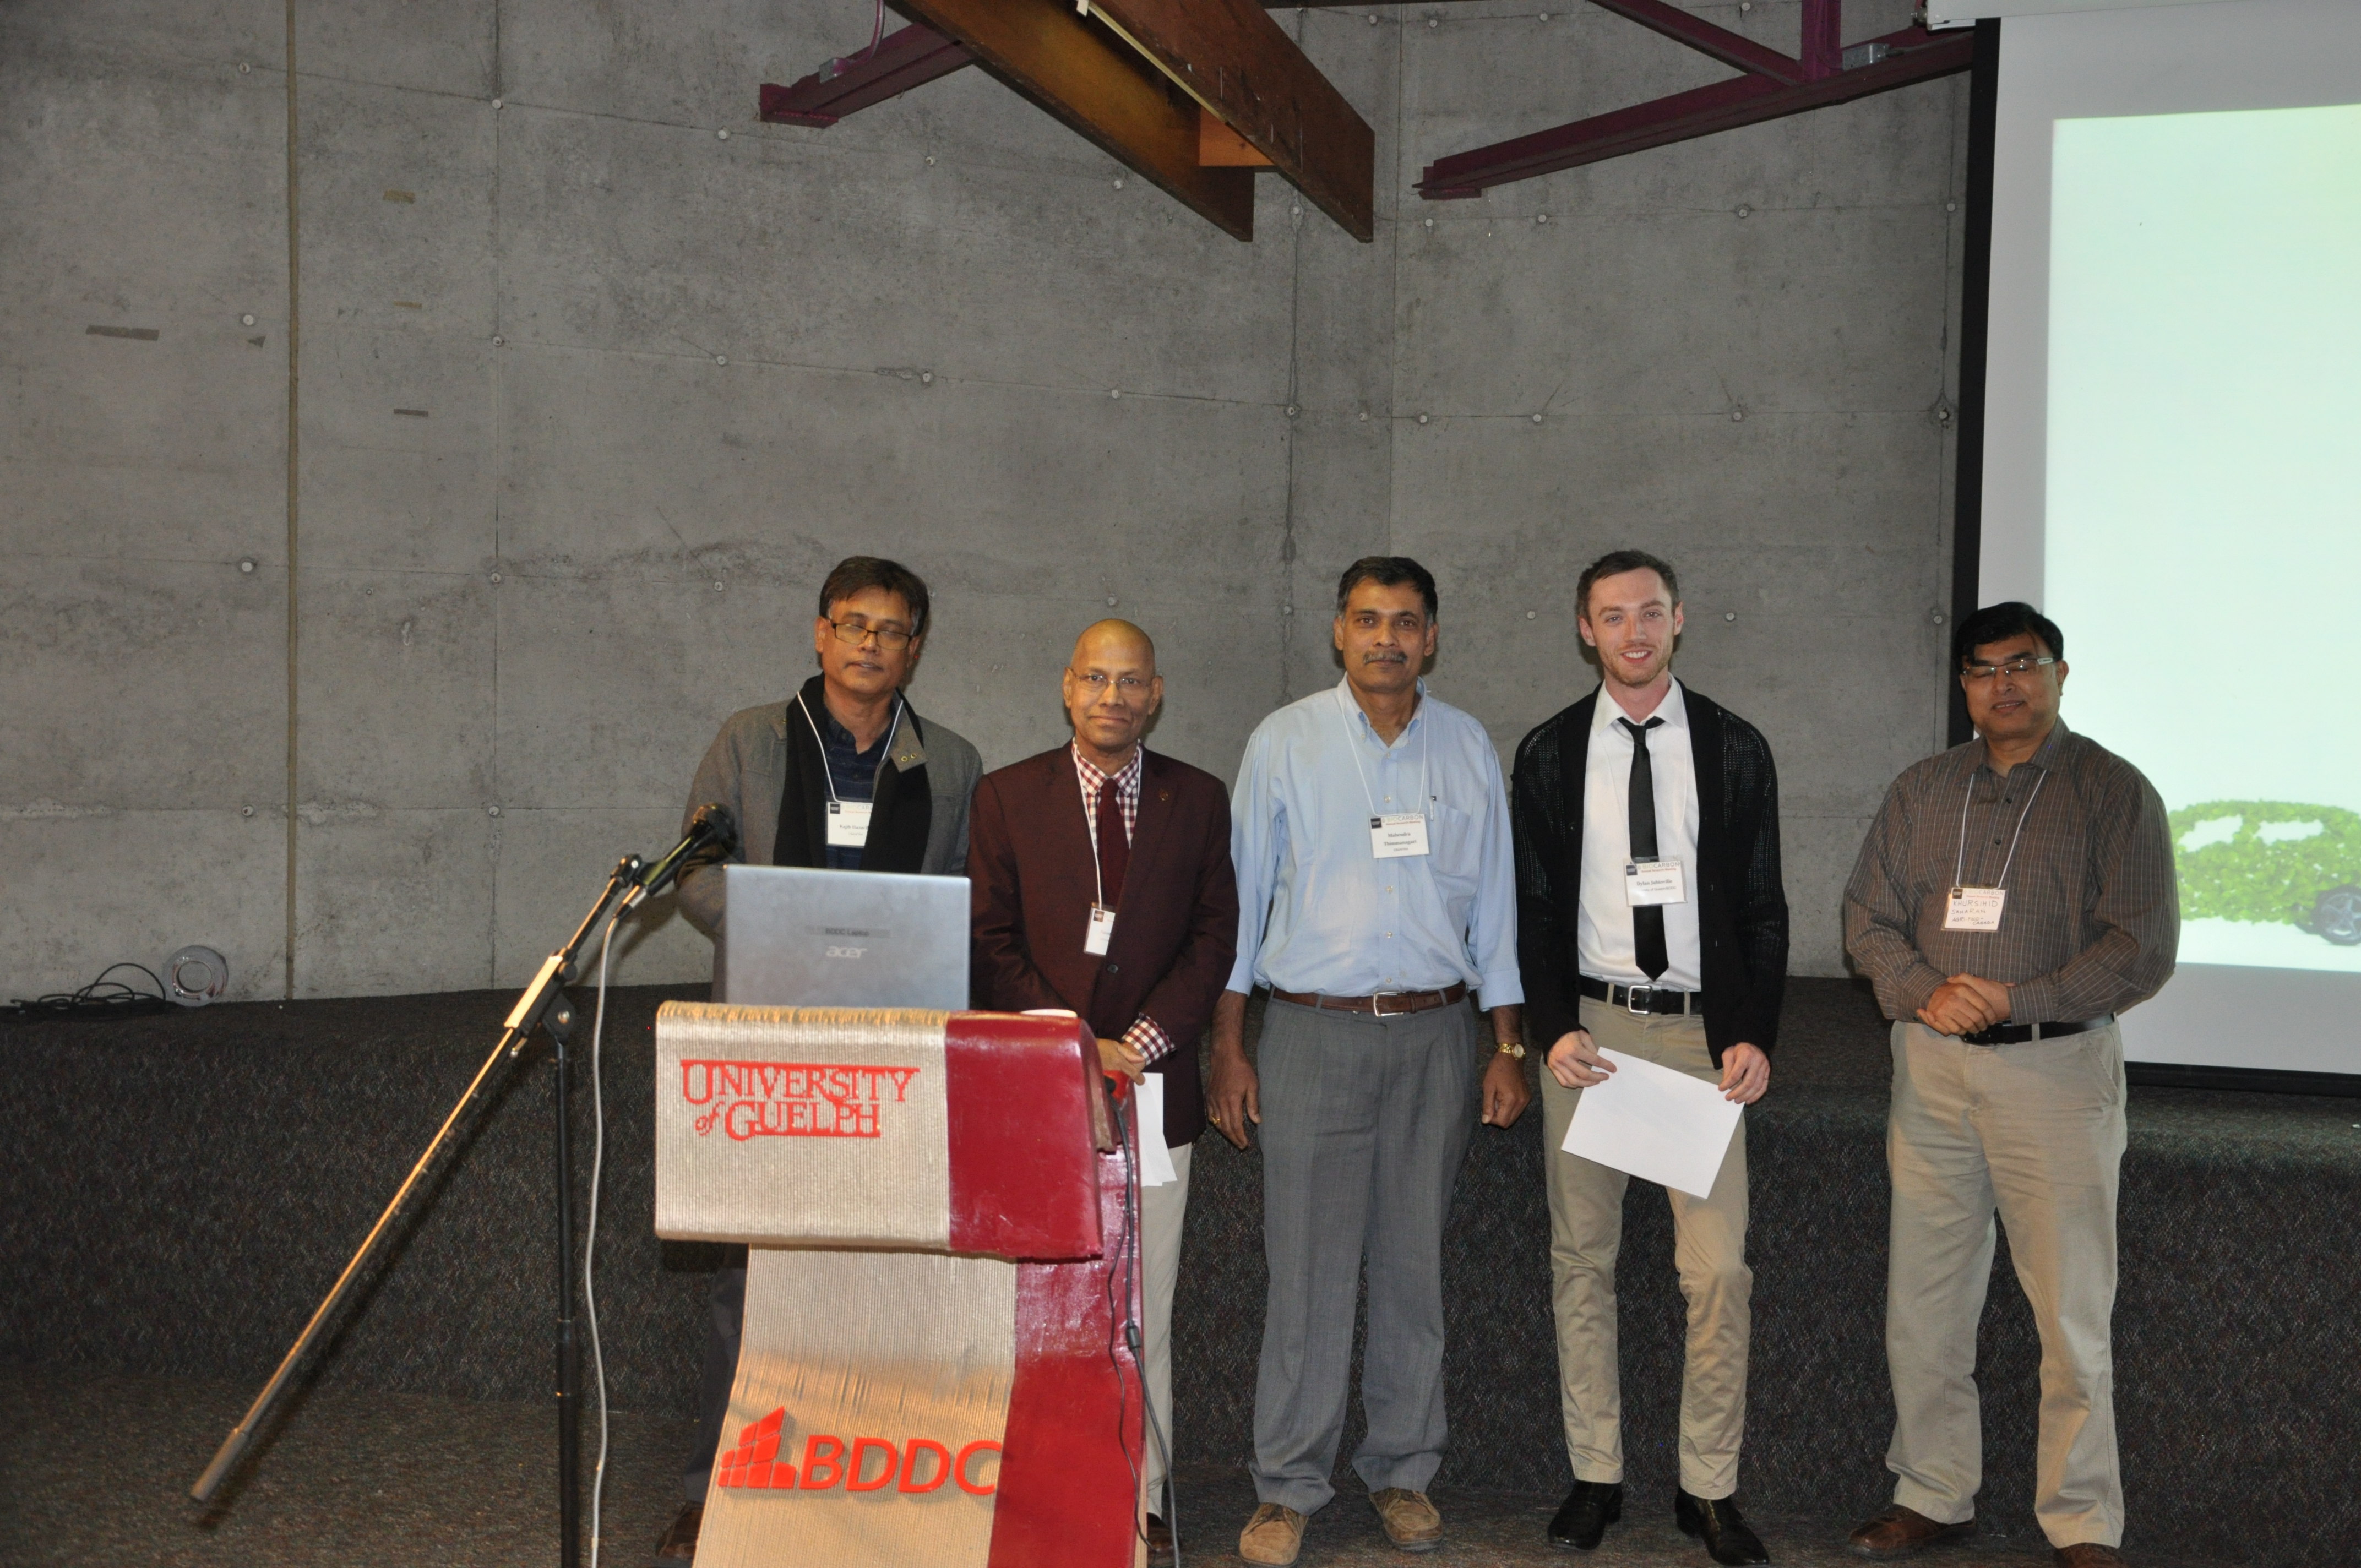 Biocarbon Research Meeting Poster Awards - First Place